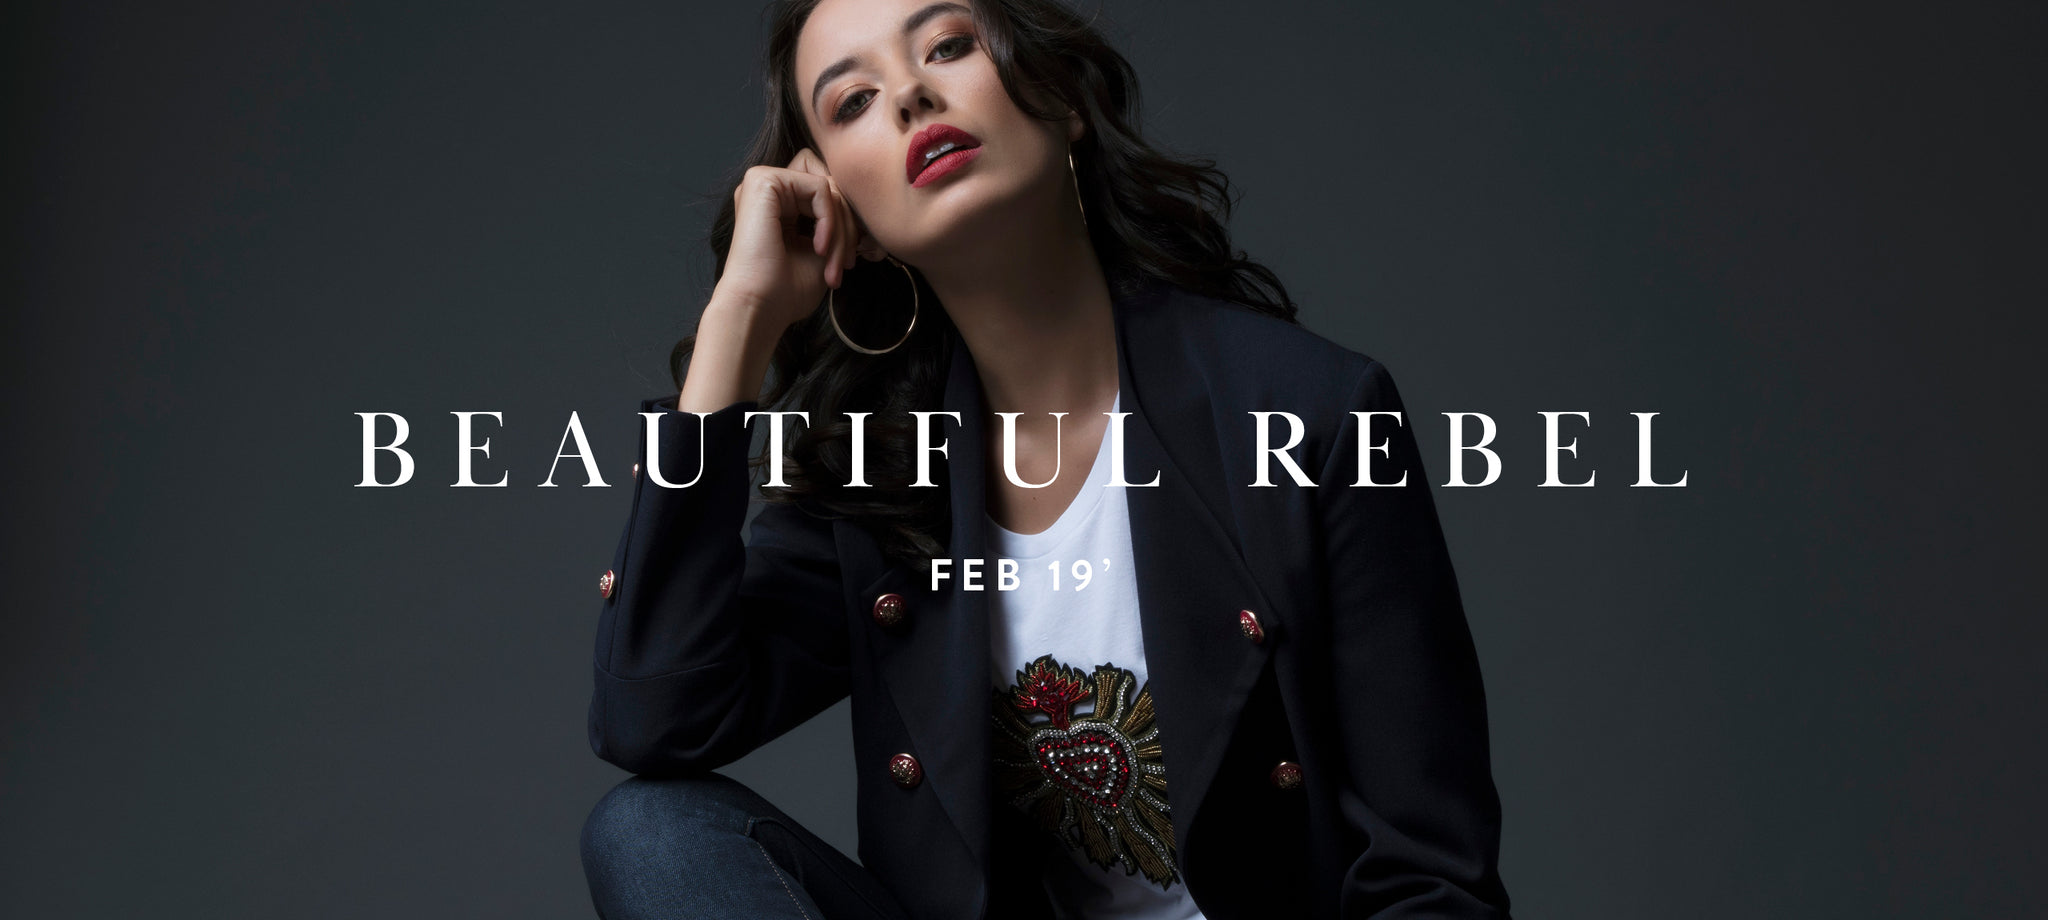 Repertoire NZ | New Zealand Designer Fashion | Womenswear | Ageless Fashion | Made in New Zealand | Beautiful Rebel